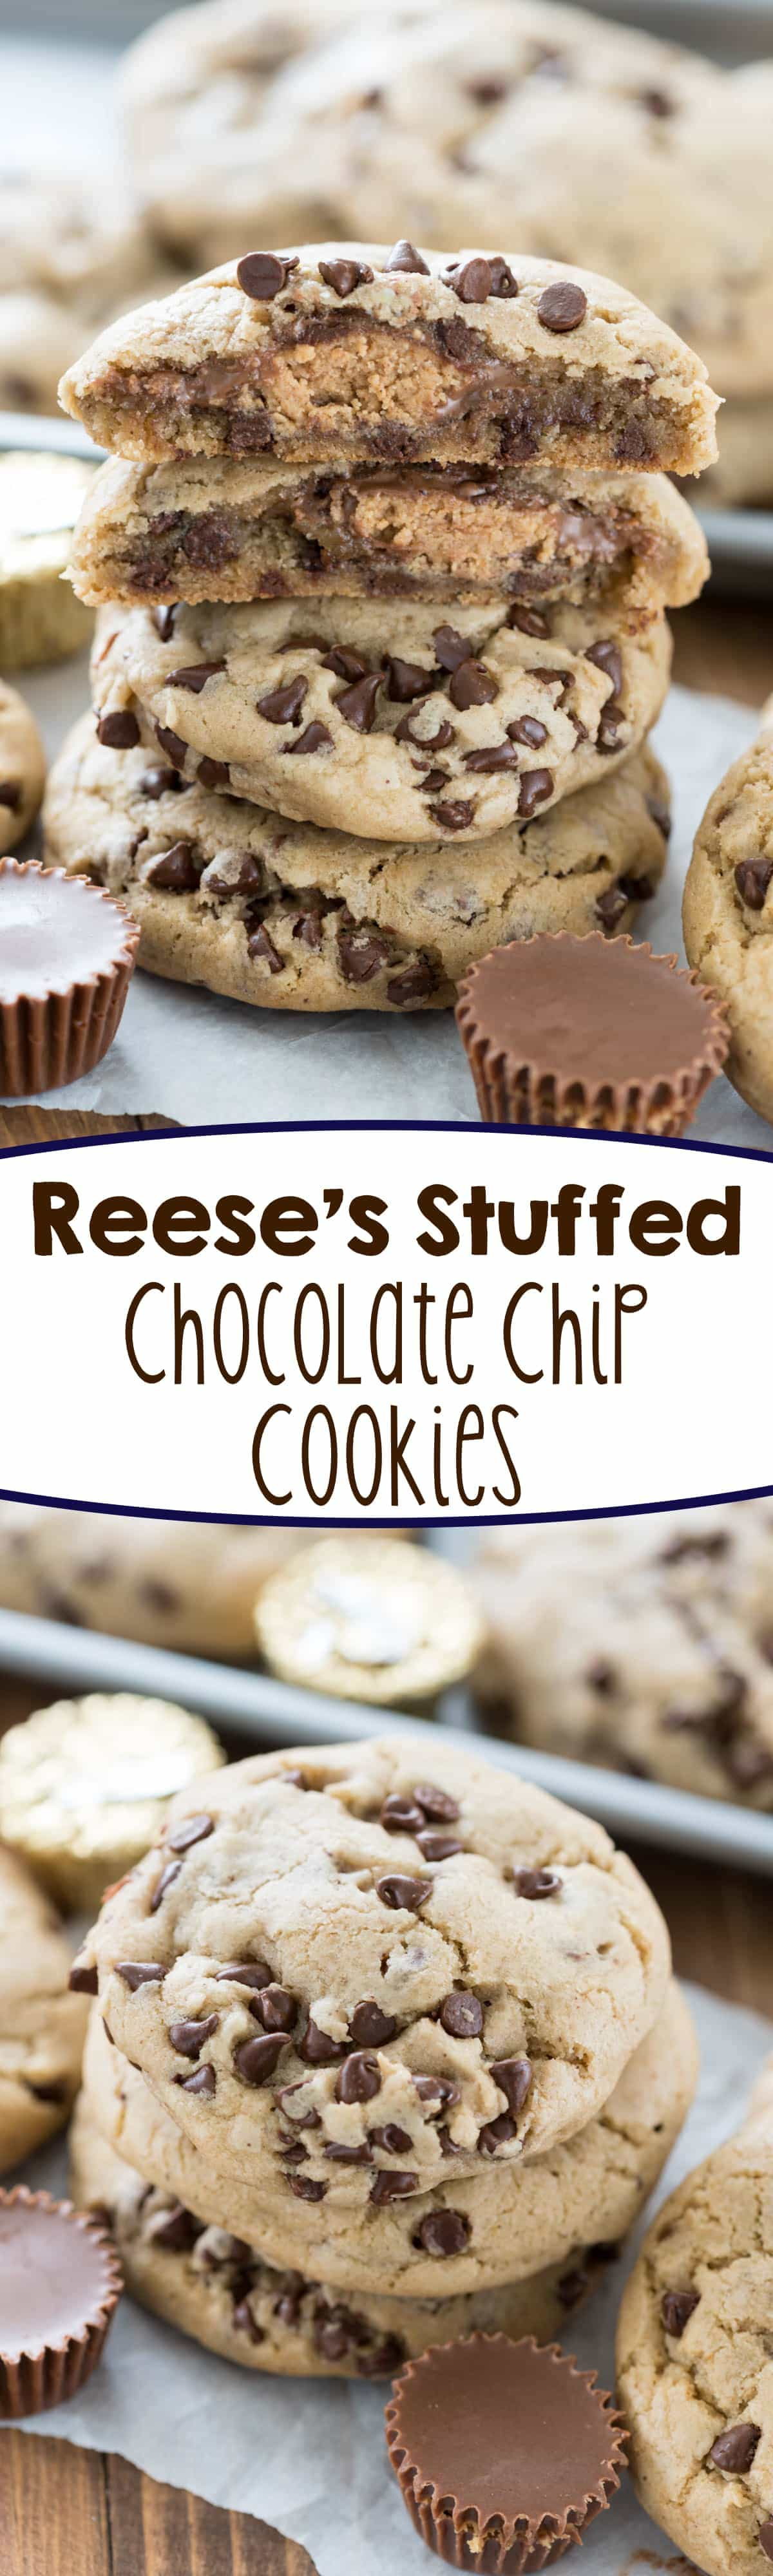 Reese's Stuffed Chocolate Chip Cookies - Crazy for Crust